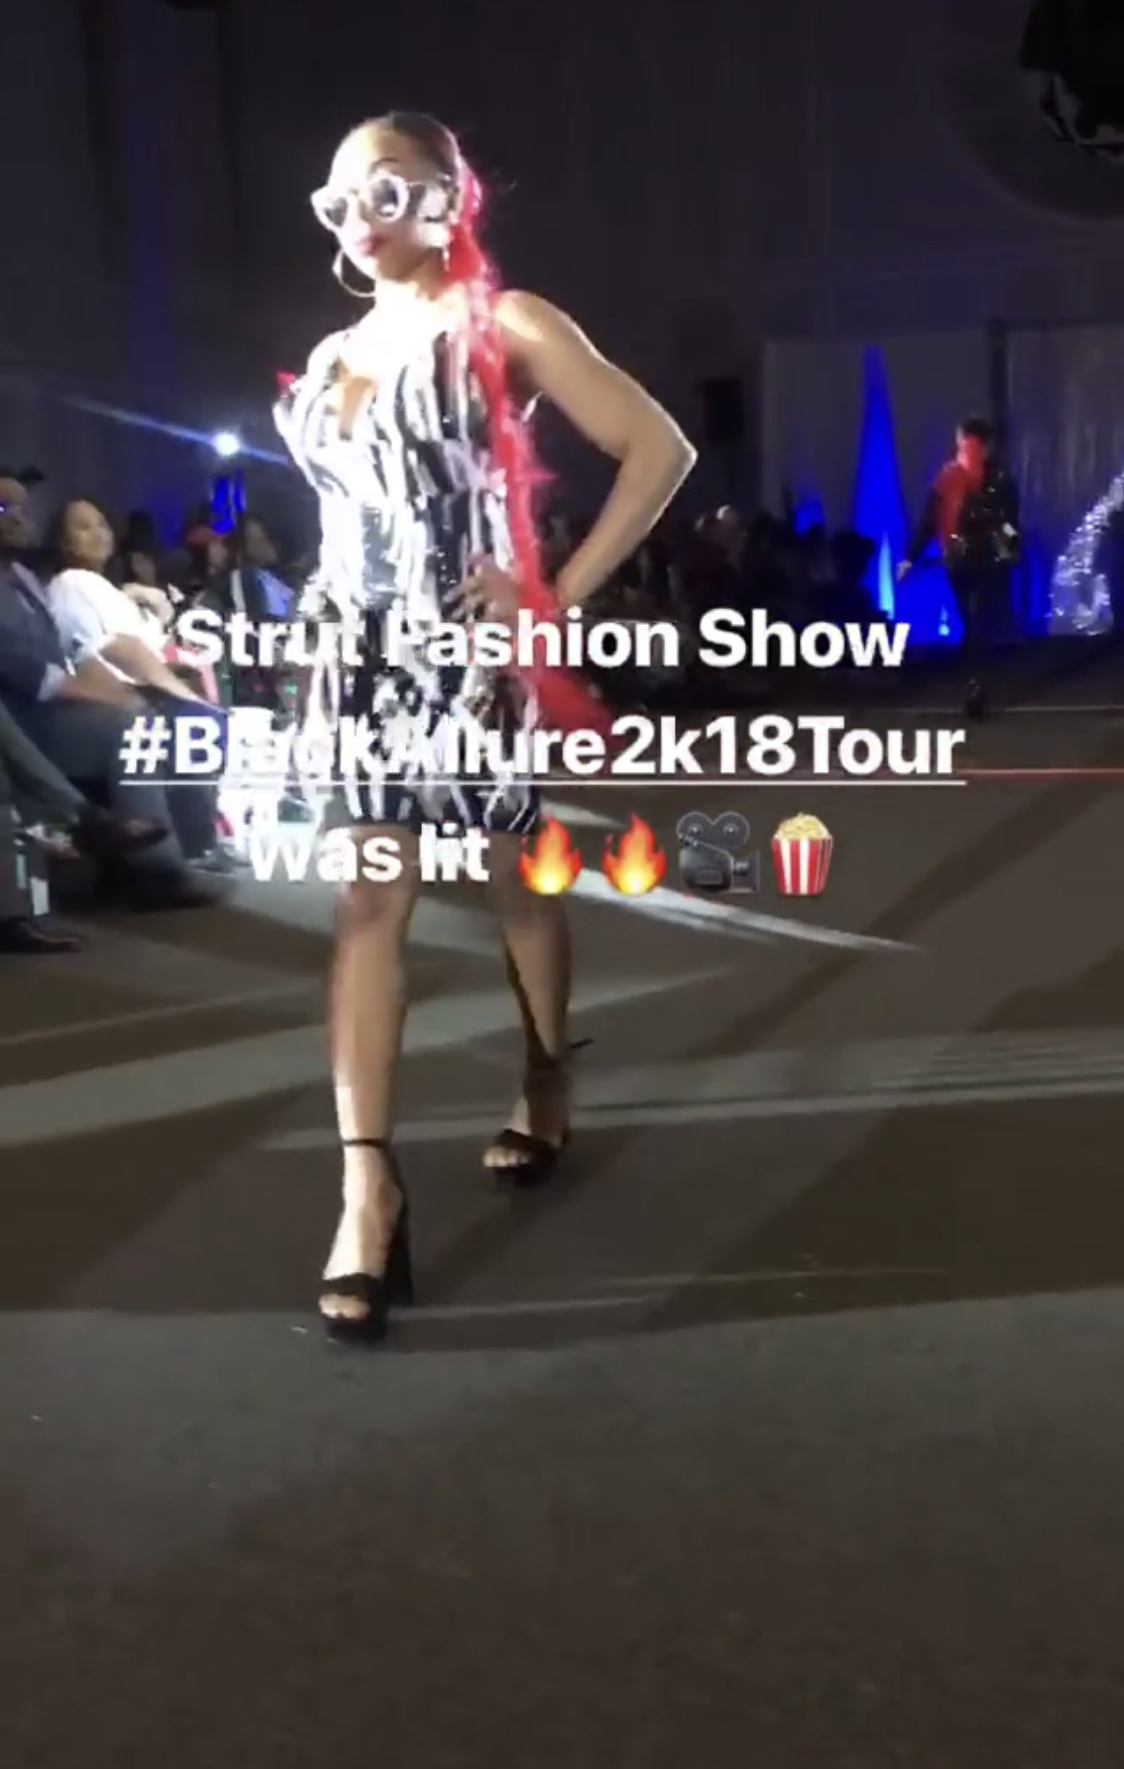 Strut #BlackAllure2k18Tour